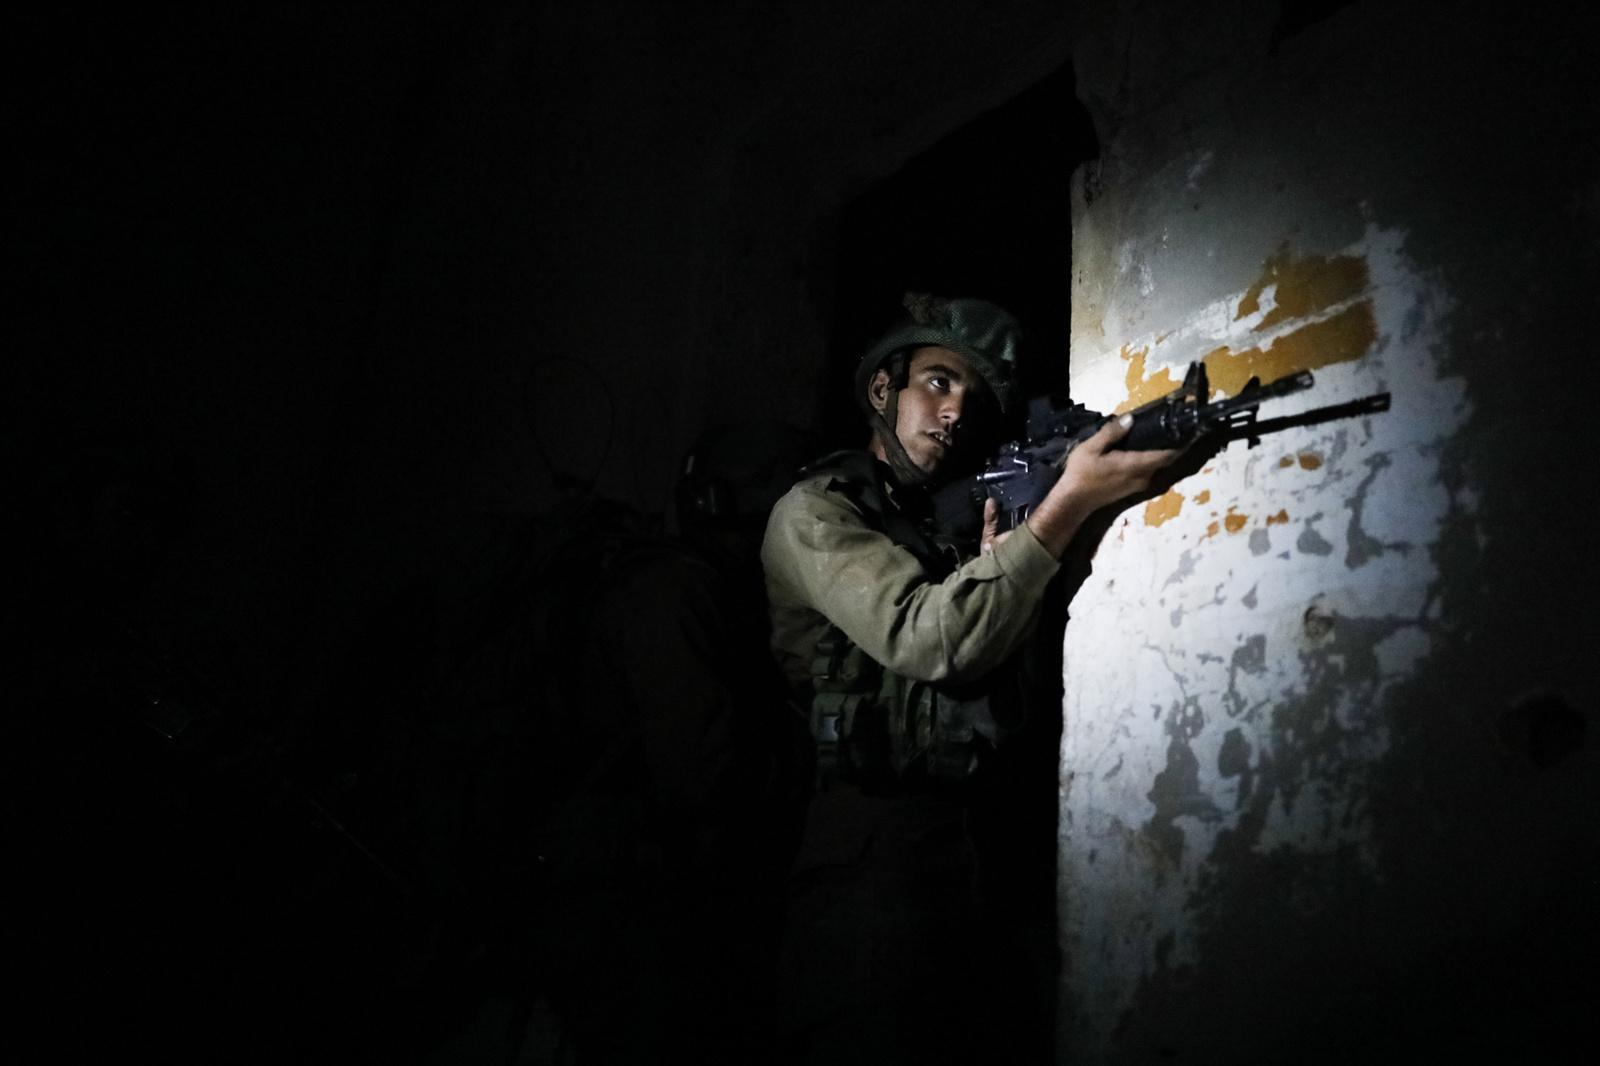 JORDAN VALLEY, ISRAEL - APRIL 05, 2017: An Israeli infantry soldier from the Haruv battalion of the Kfir Brigade takes part in an urban warfare drill that takes place at an abandoned building close to the Kfir Brigade base in the Jordan Valley, West Bank, Israel, on April 05, 2017.